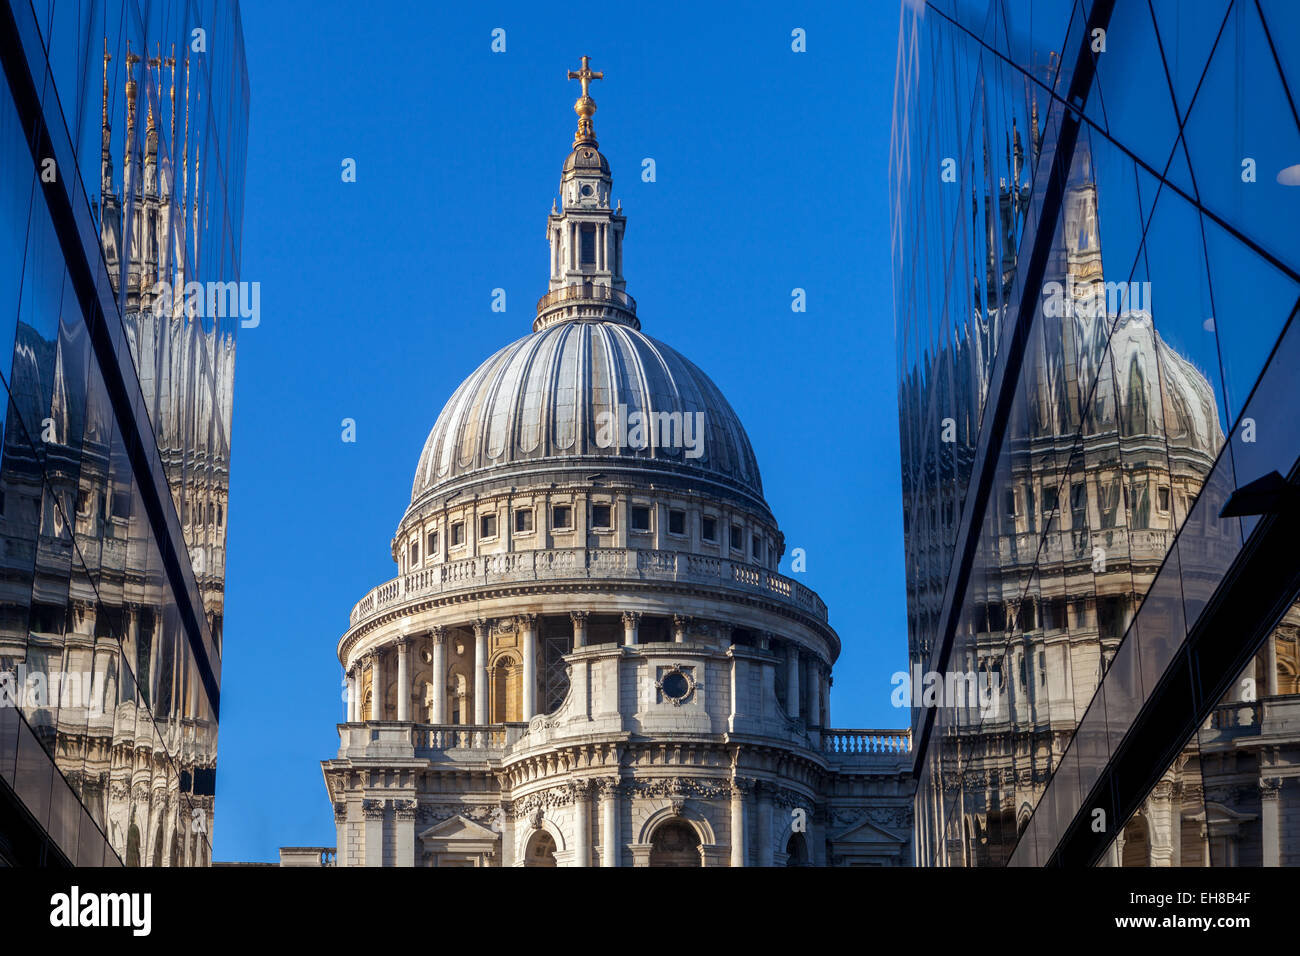 St. Paul's Cathedral viewed from One New Change in the City of London, London, England, United Kingdom, Europe - Stock Image